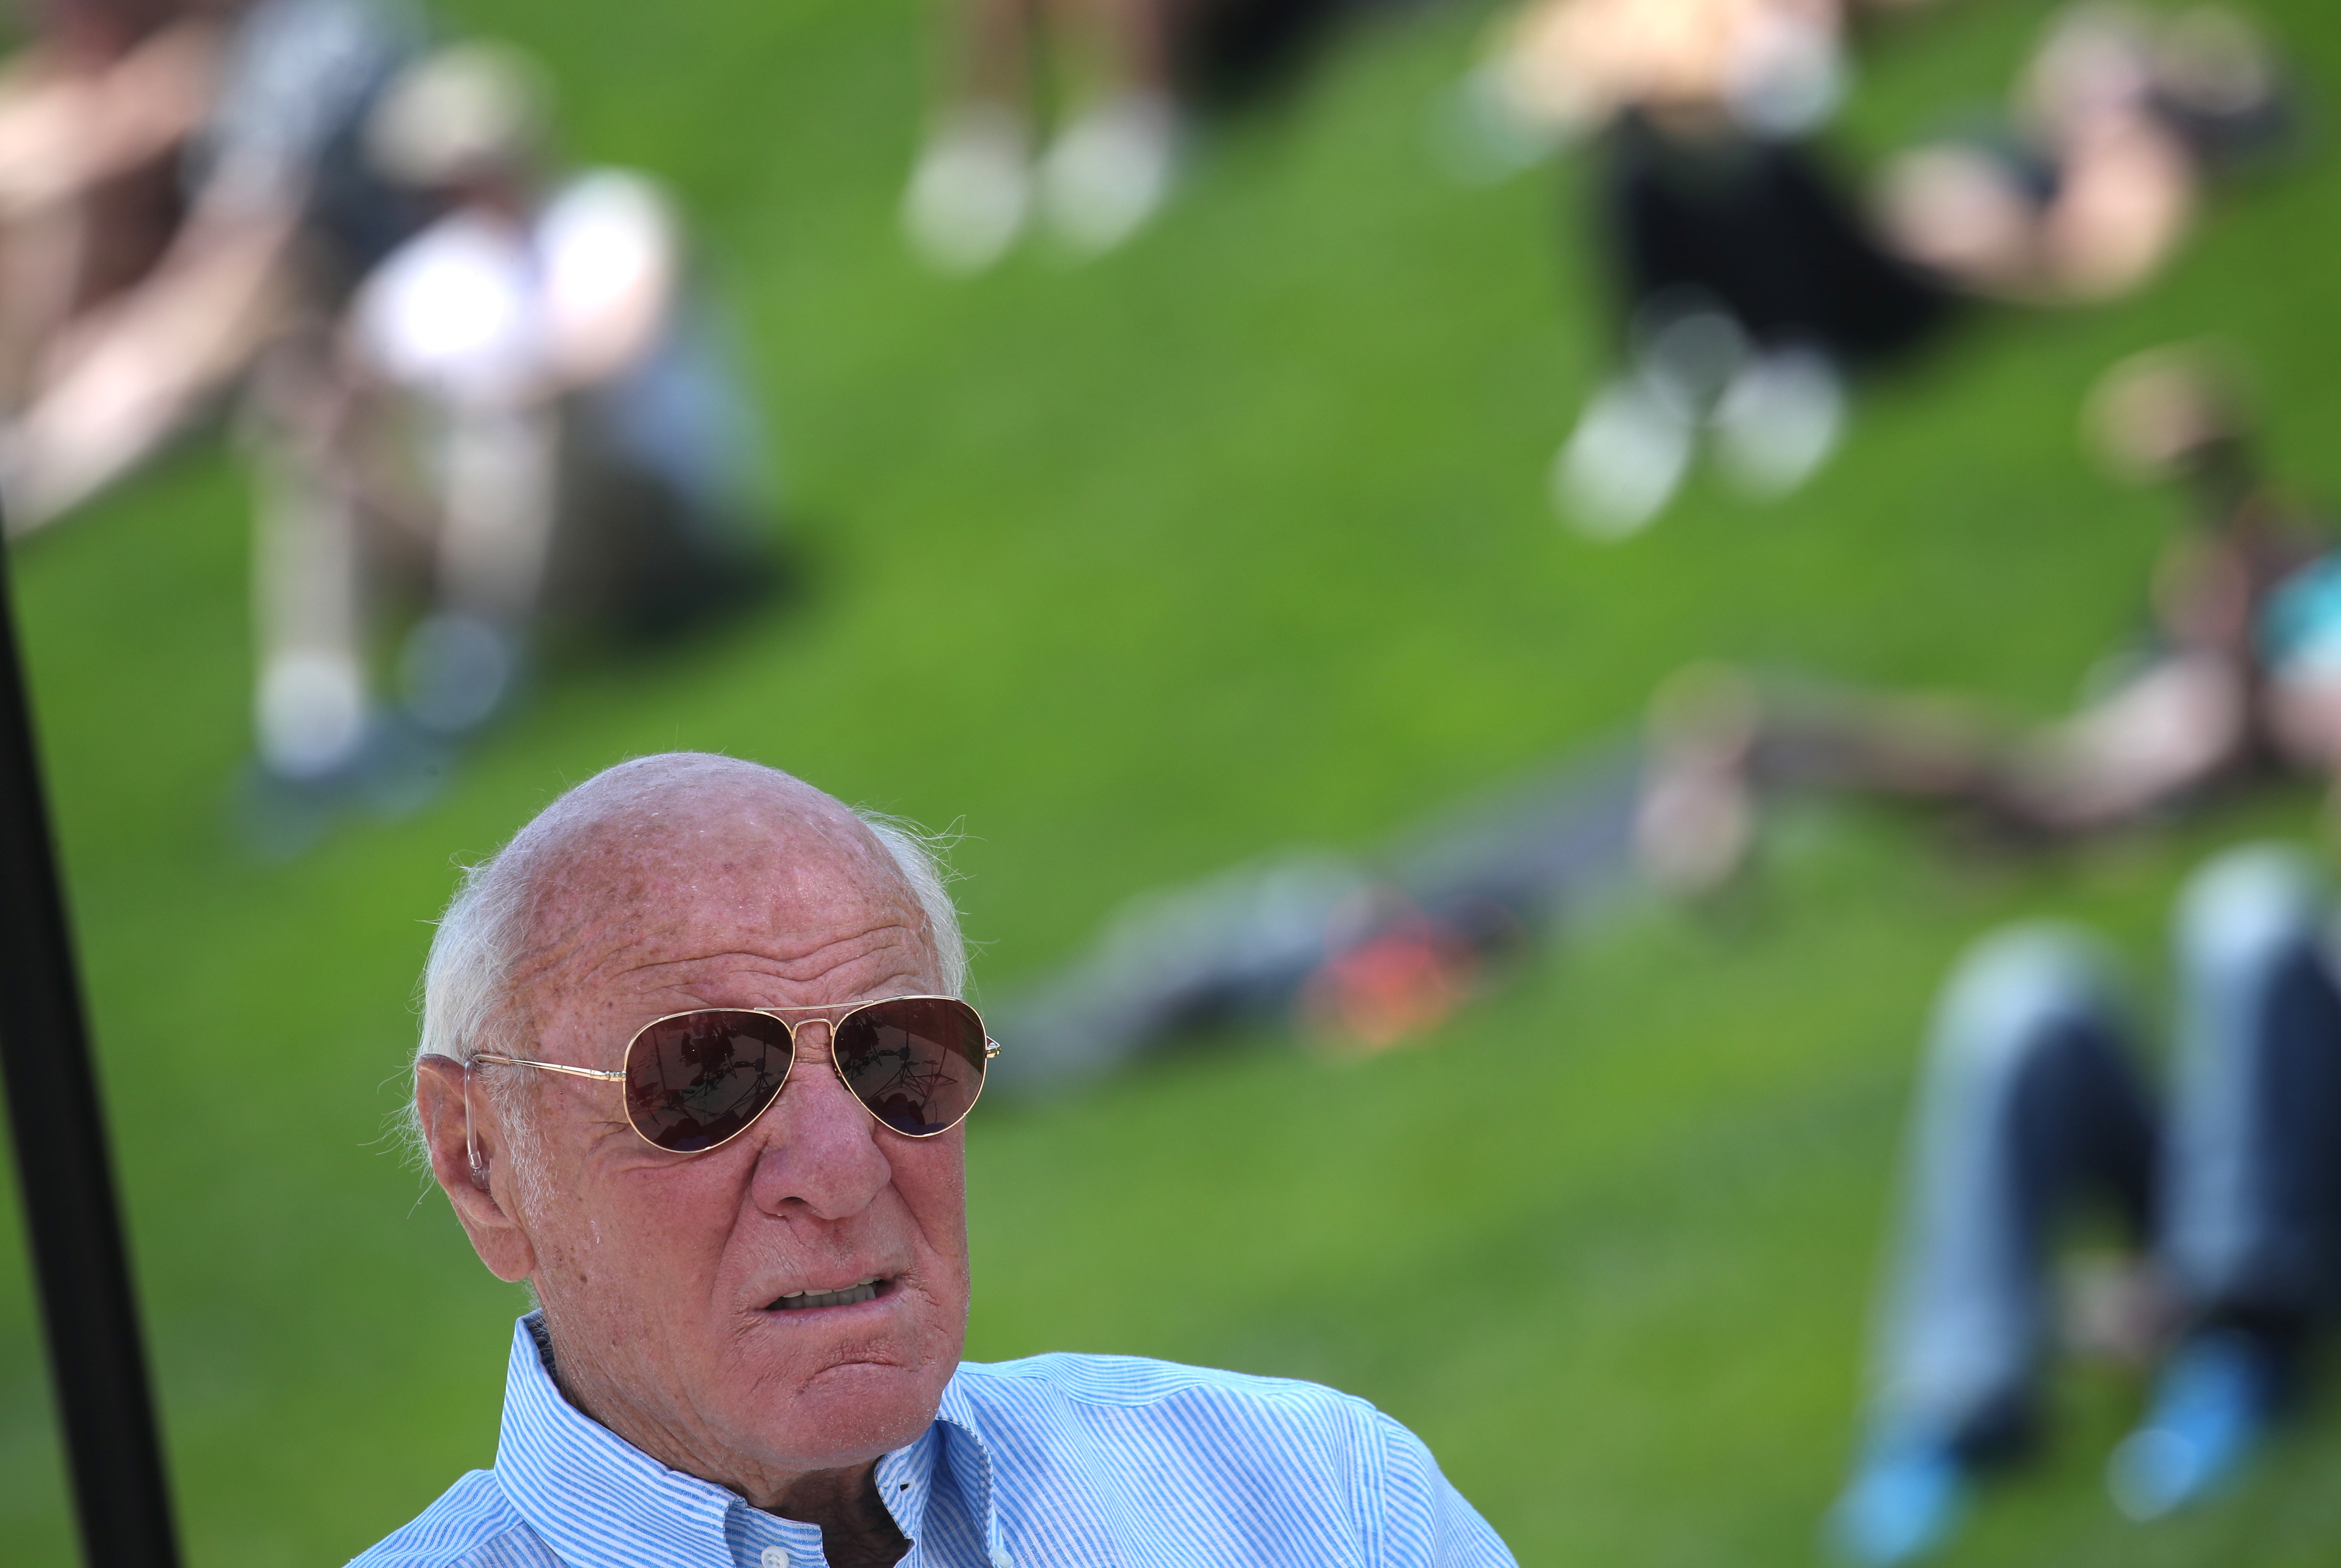 IAC Chairman Barry Diller at Little Island Park on Manhattan's West Side, during the park's opening day in New York City, May 21, 2021. REUTERS/Mike Segar